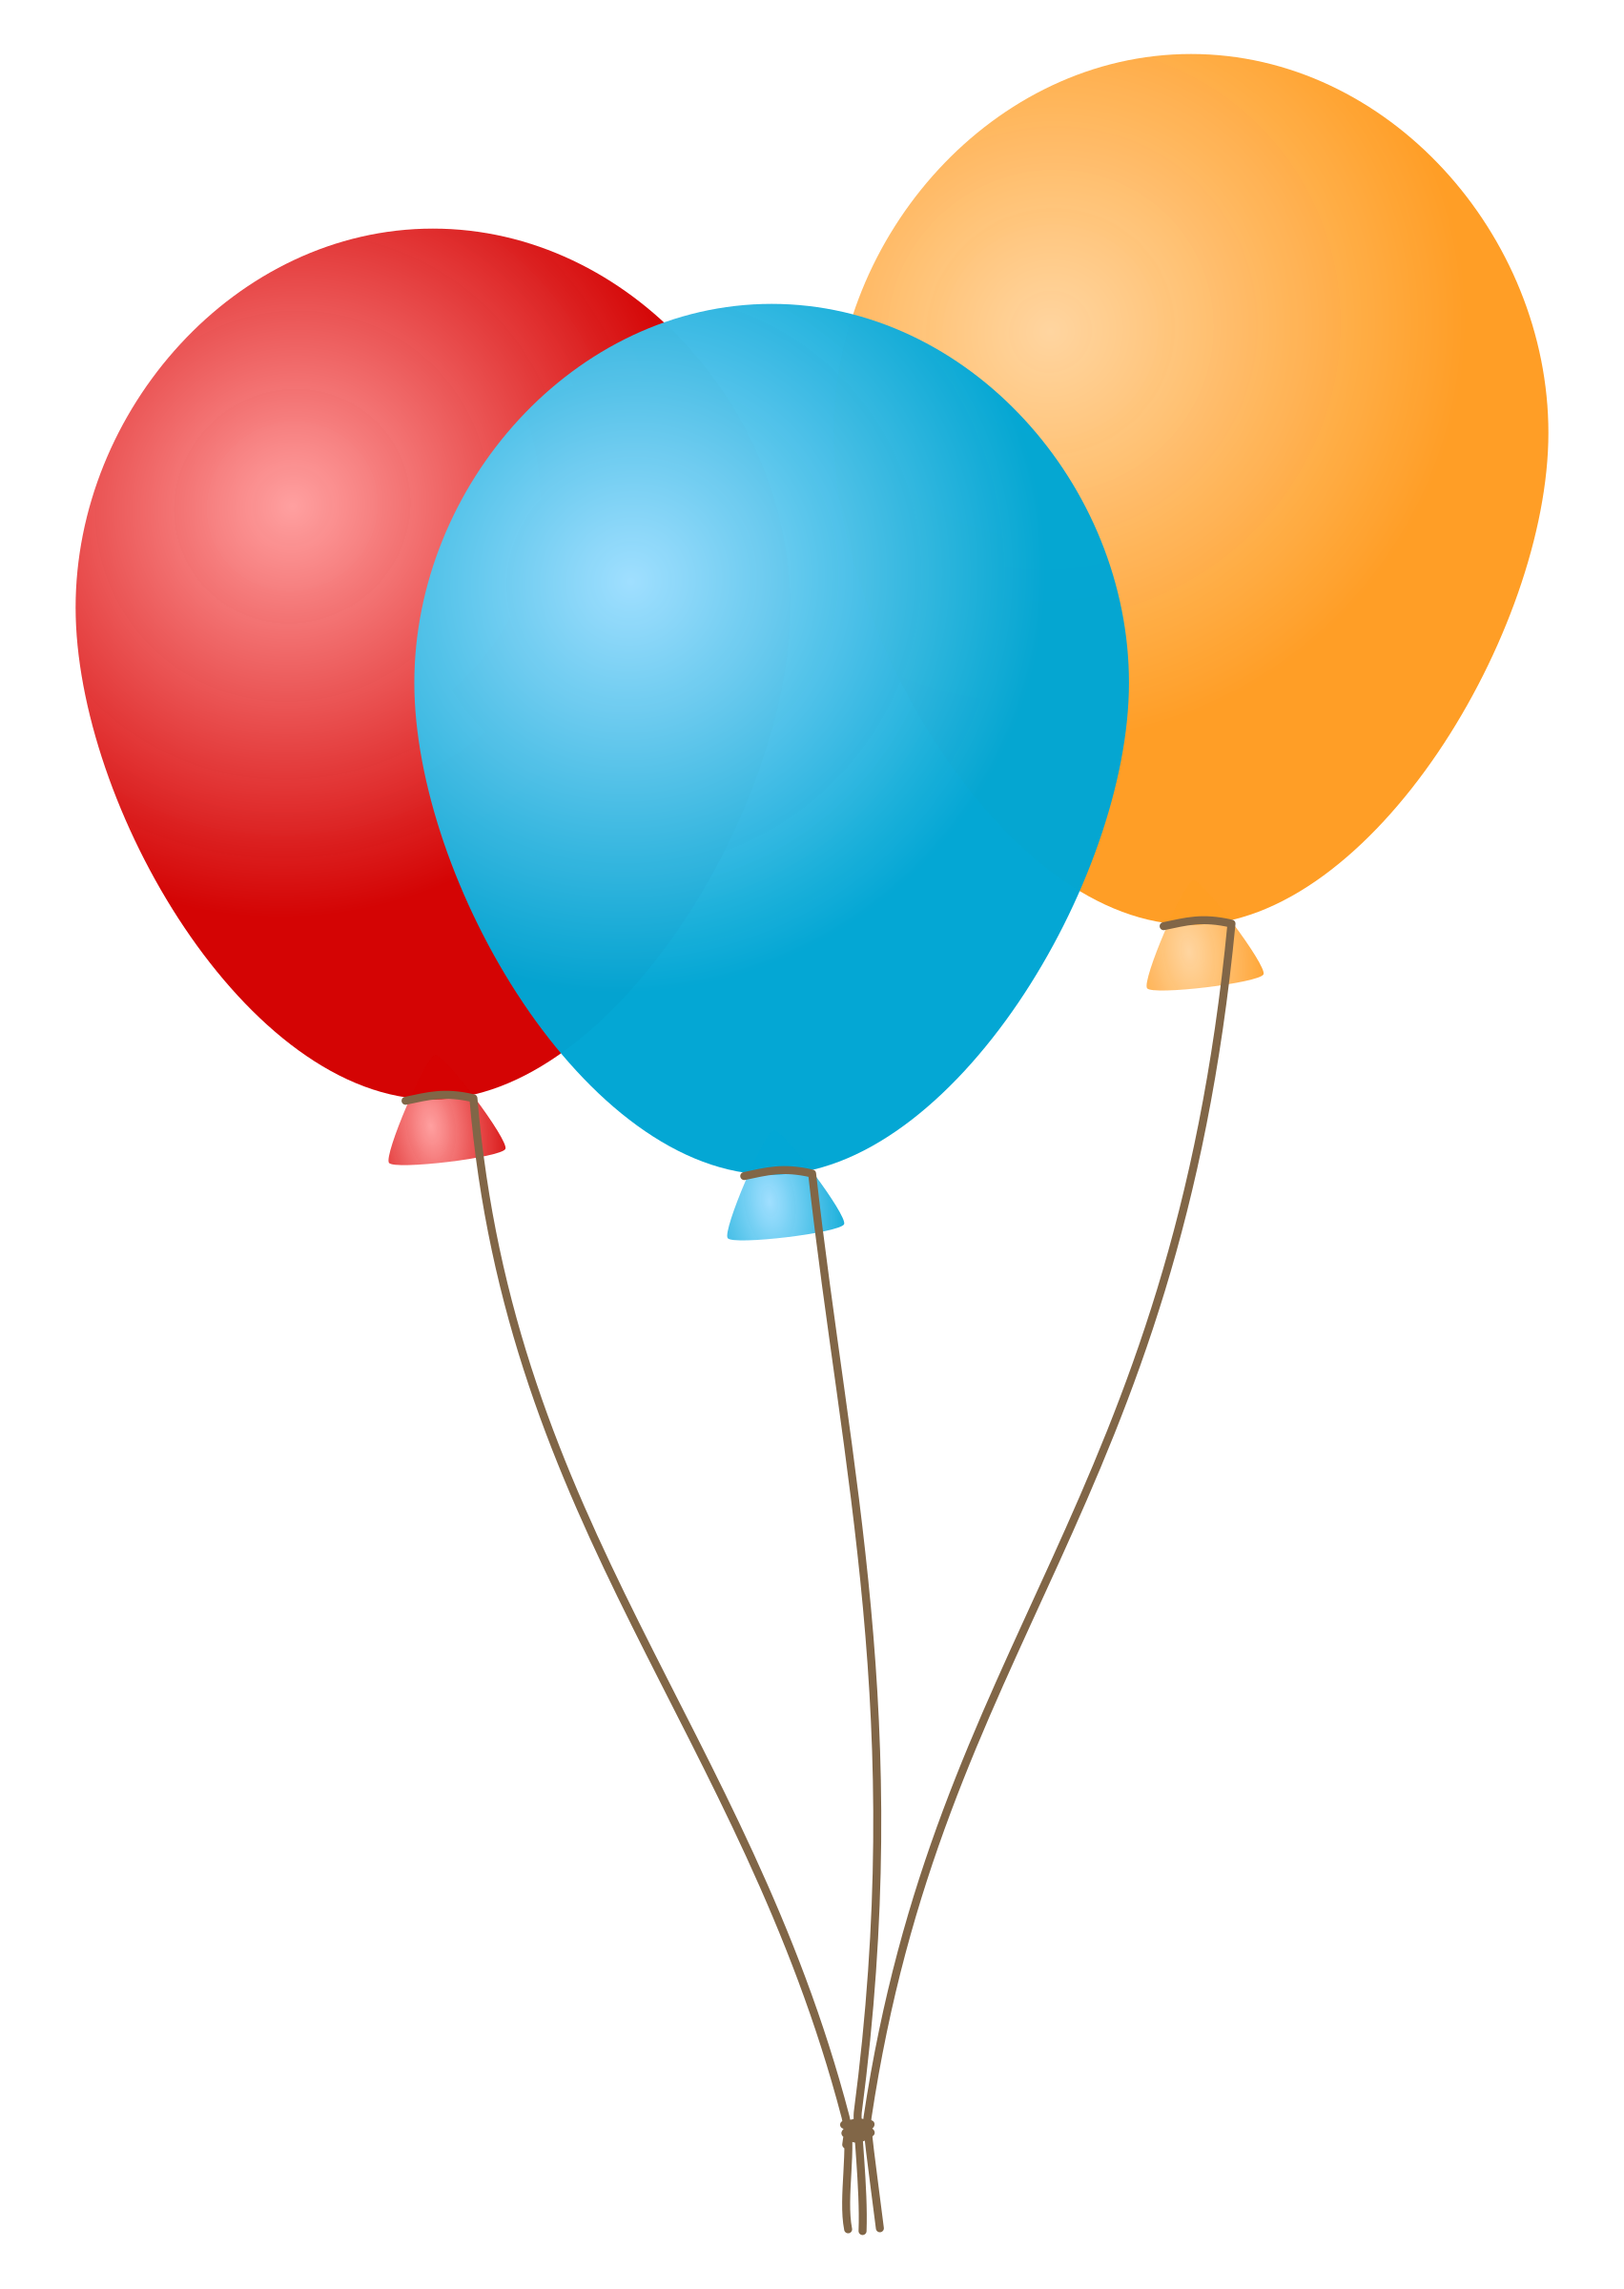 clipart balloon cartoon